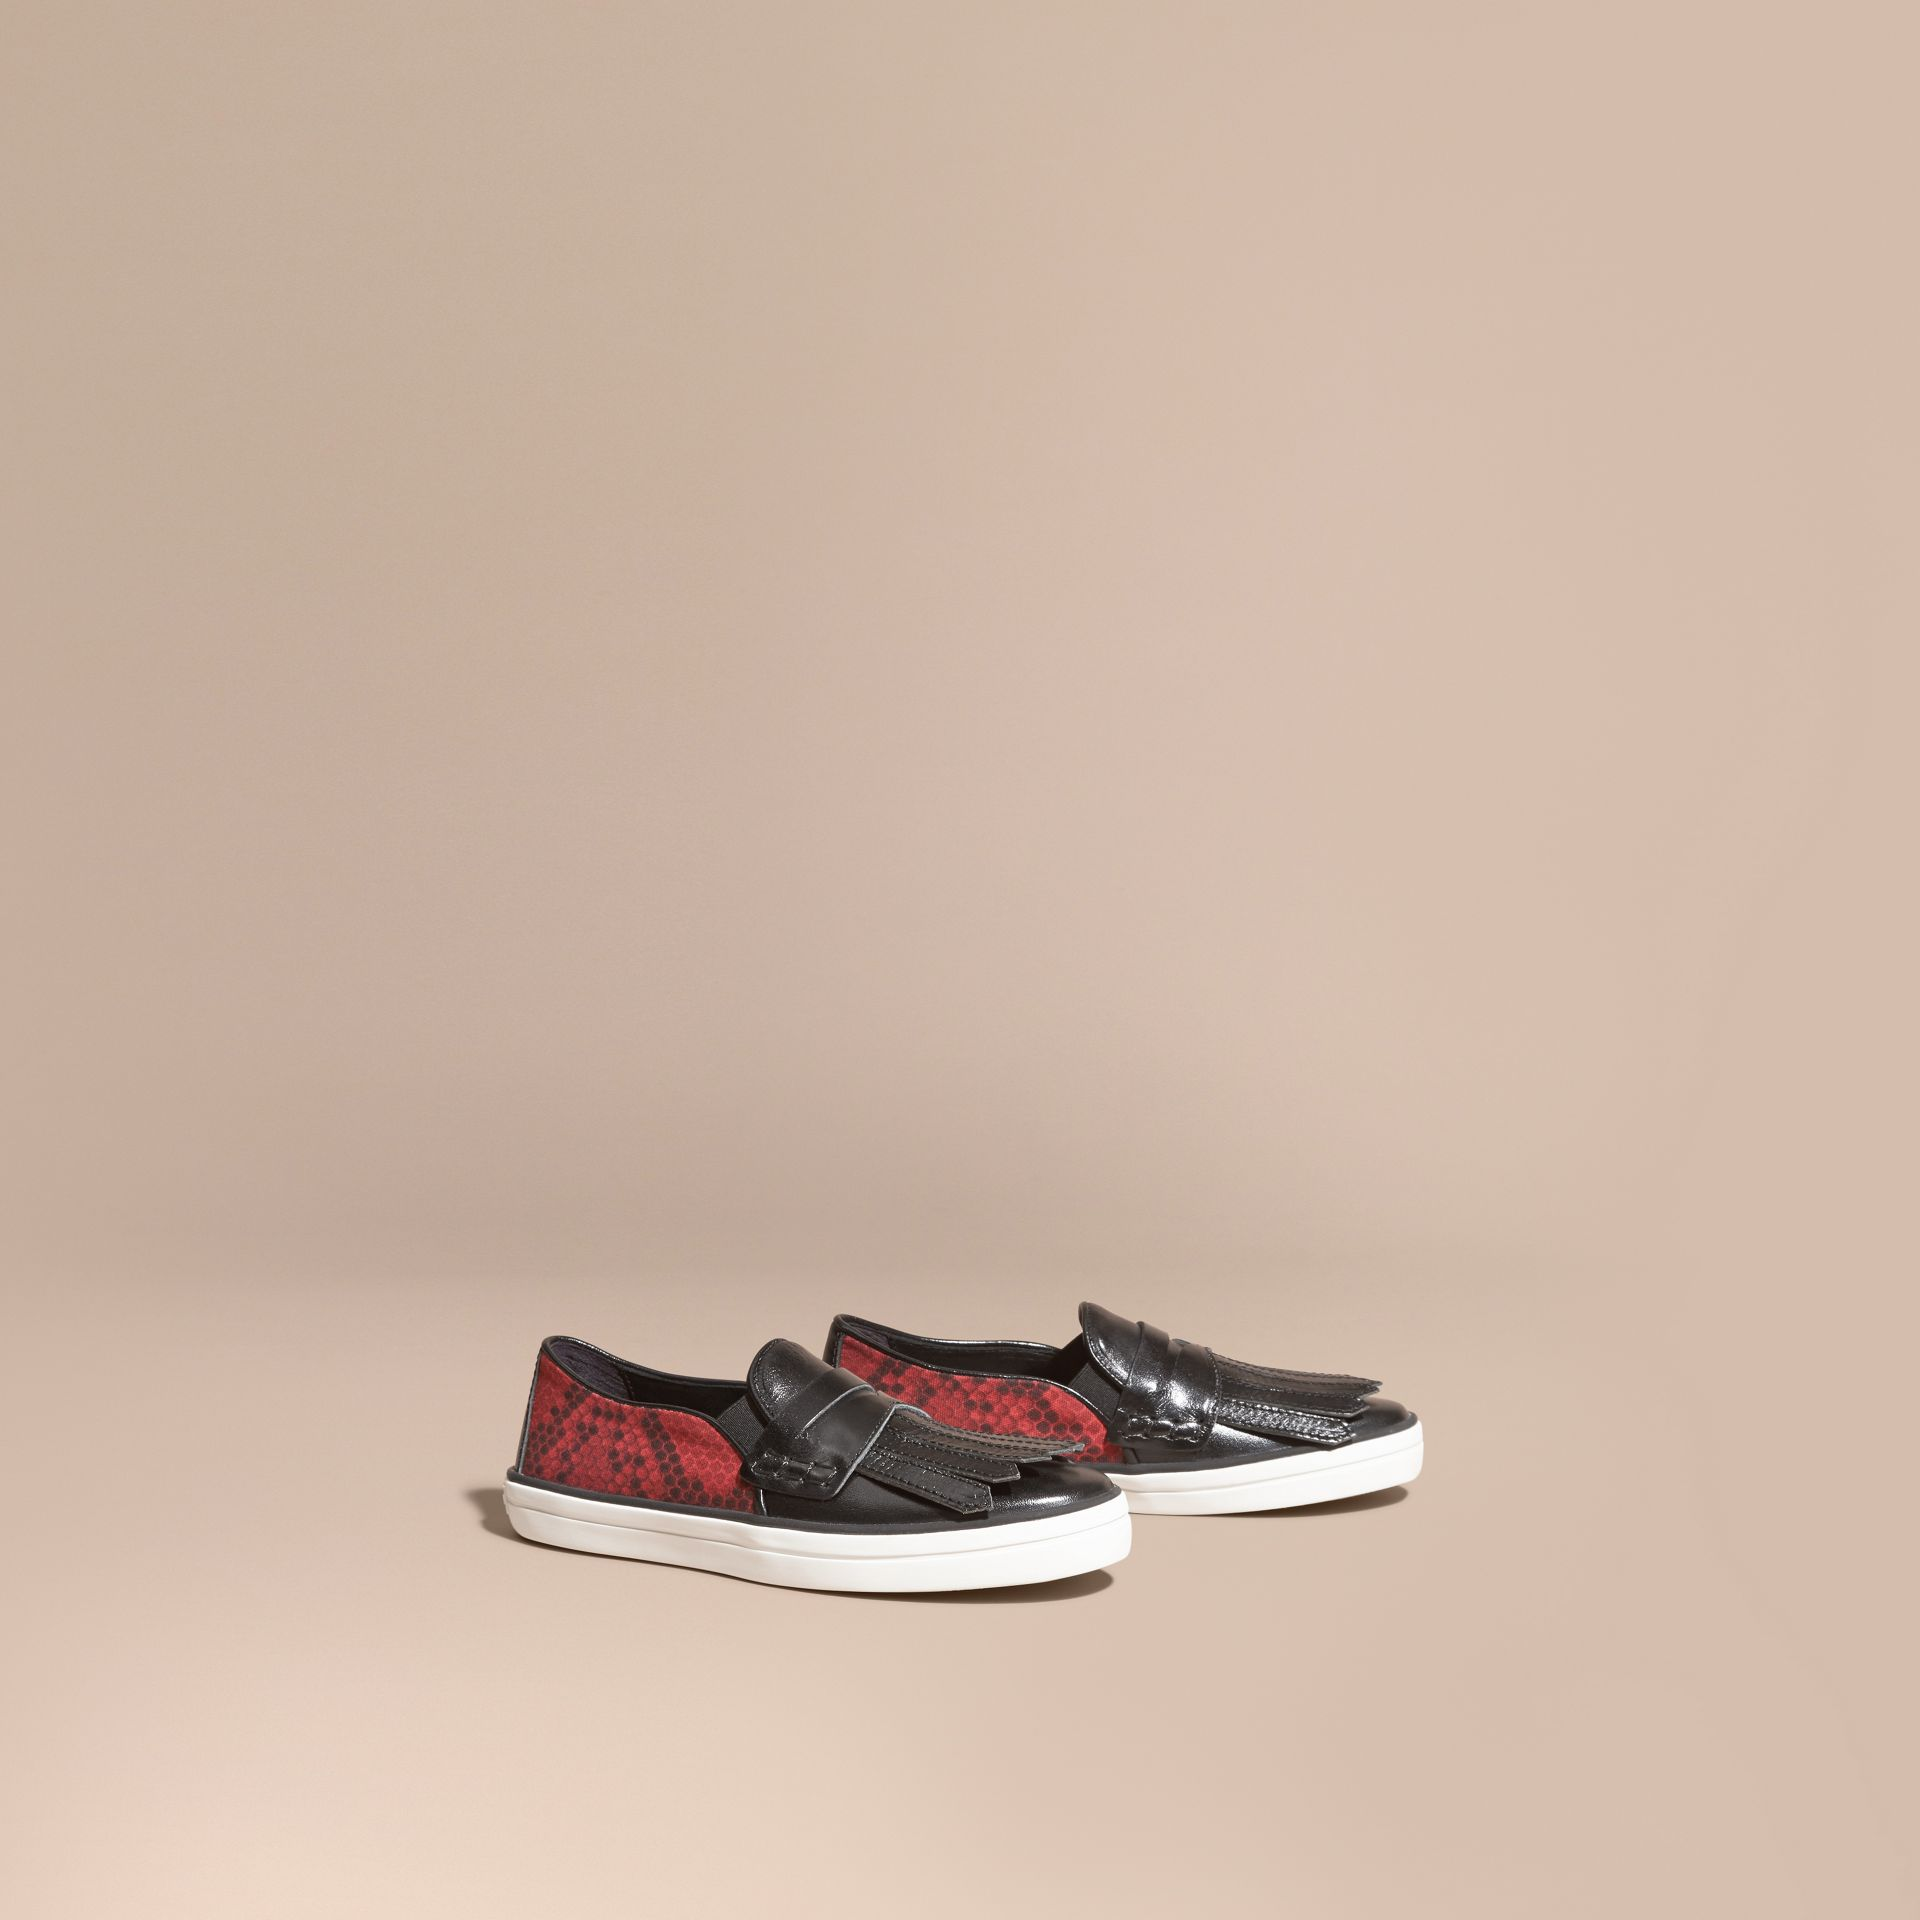 Black/windsor red Python Print Cotton and Leather Trainers Black/windsor Red - gallery image 1